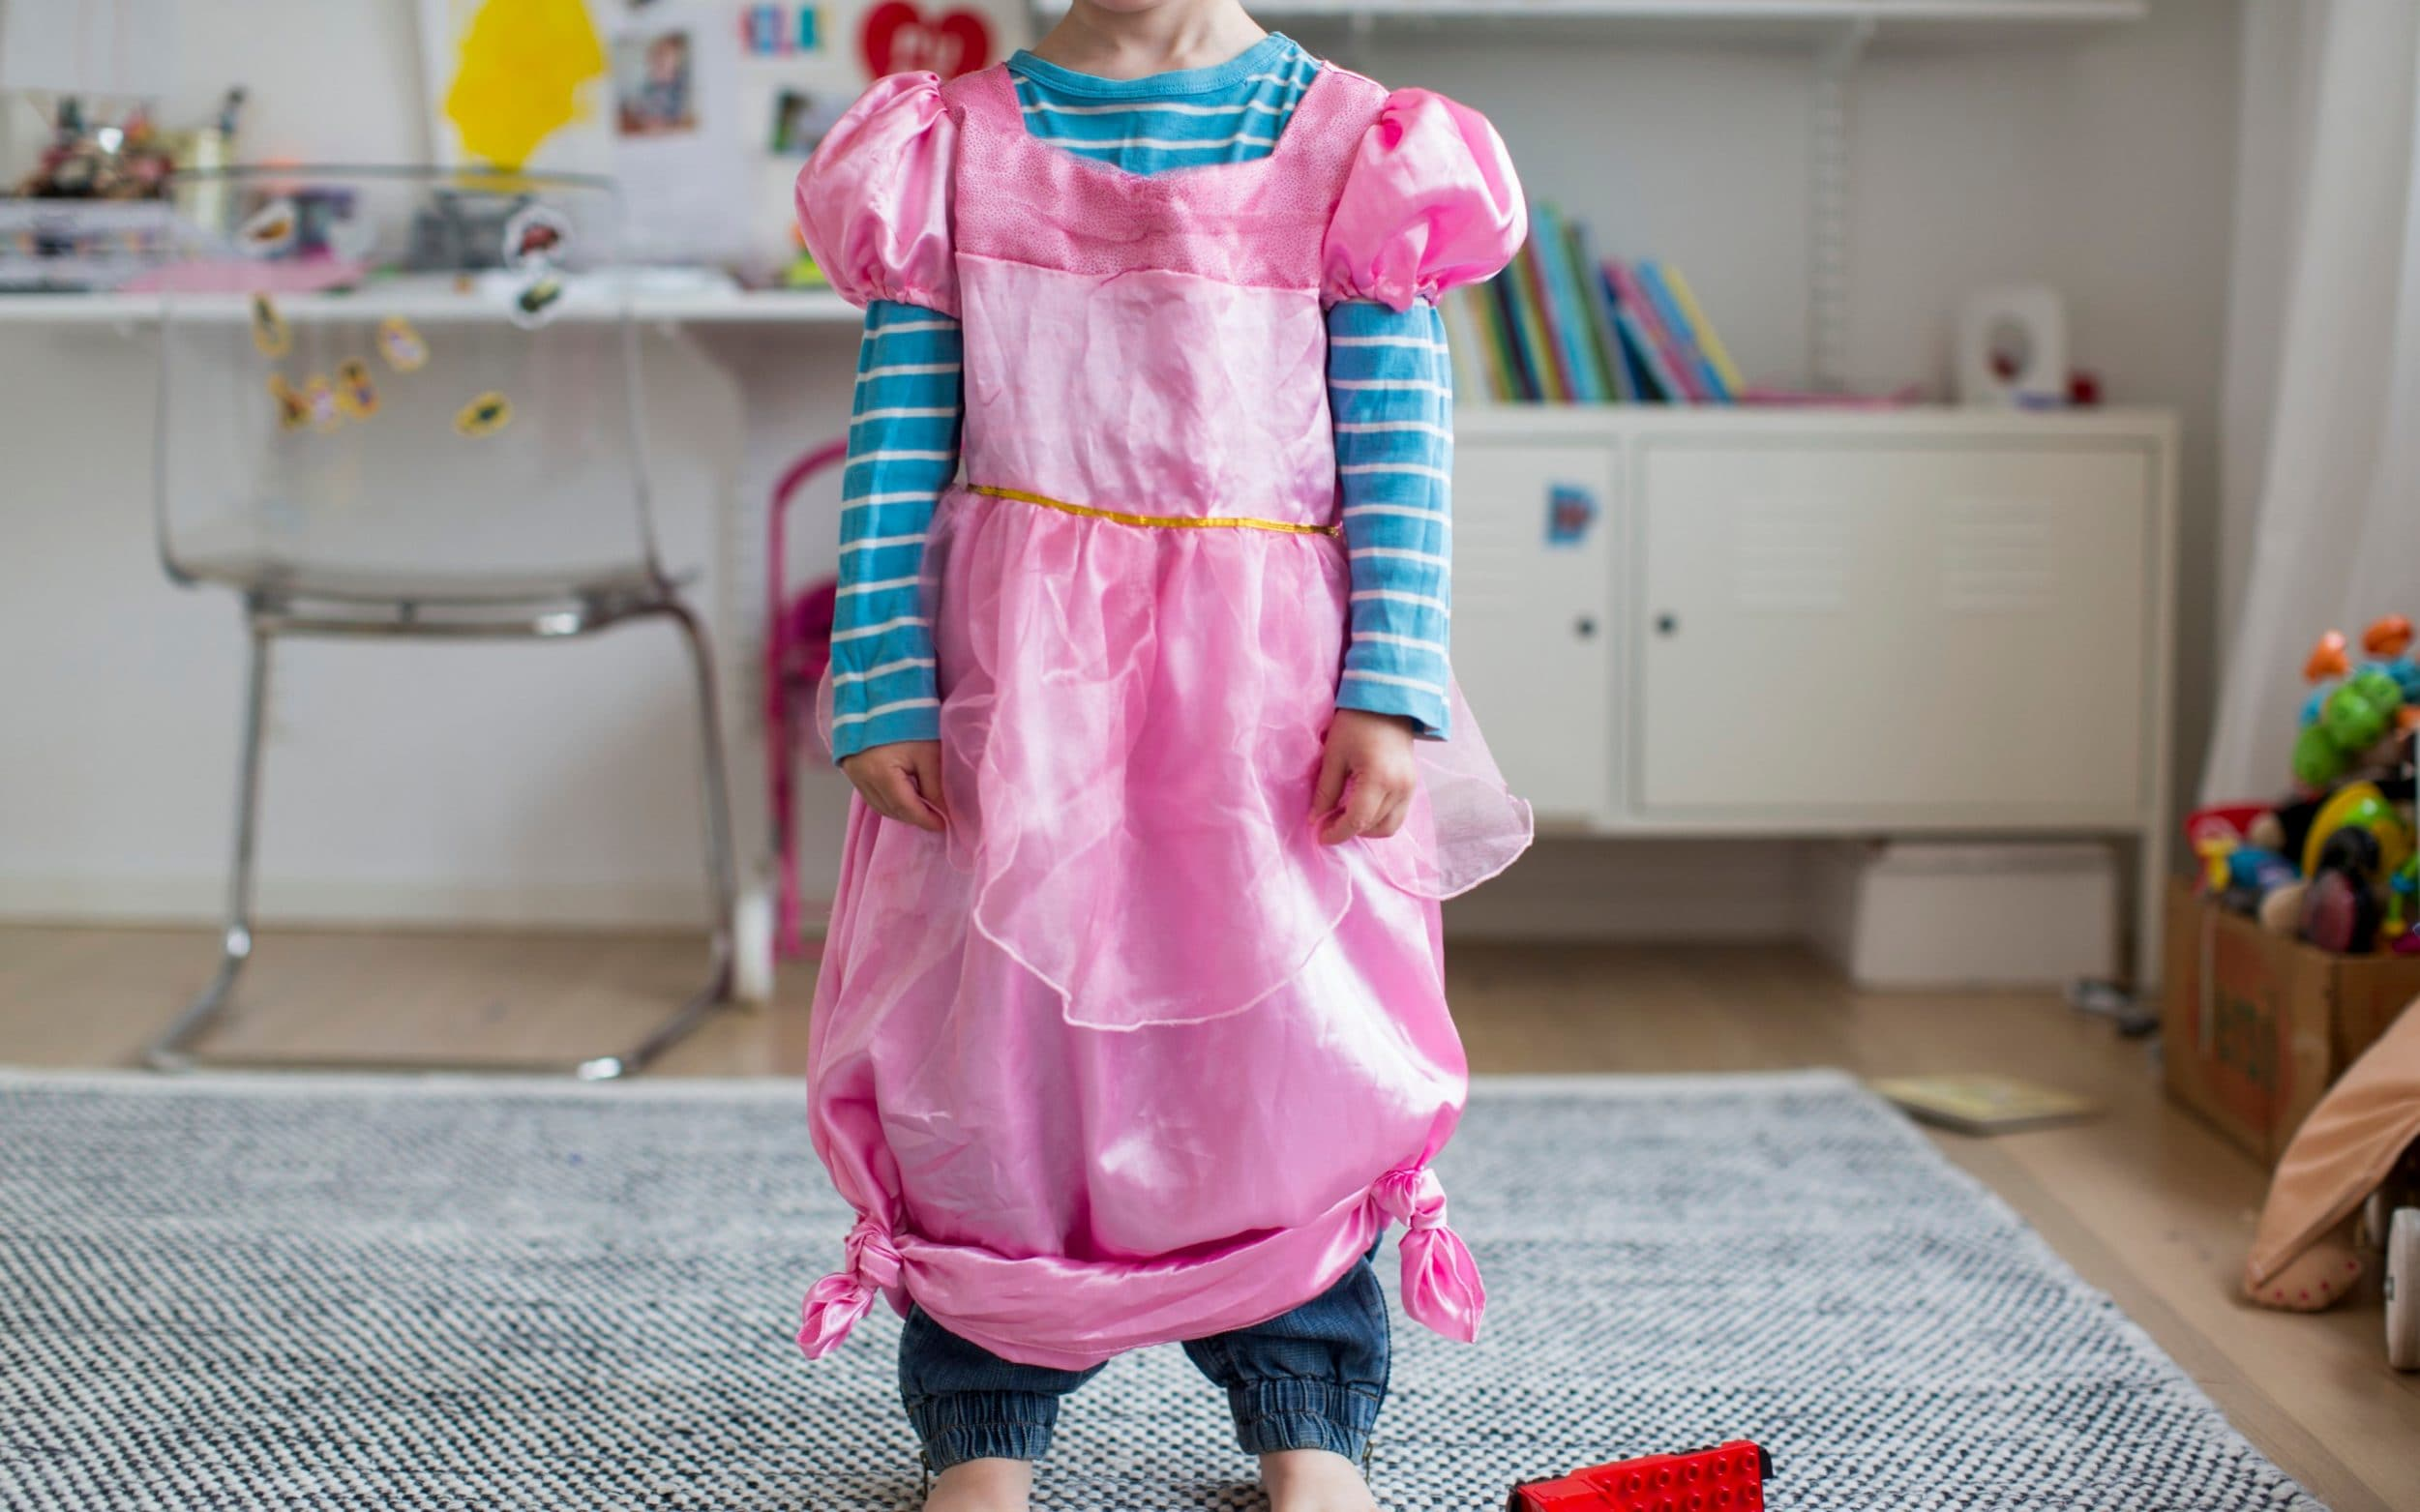 Child wearing fancy pink dress